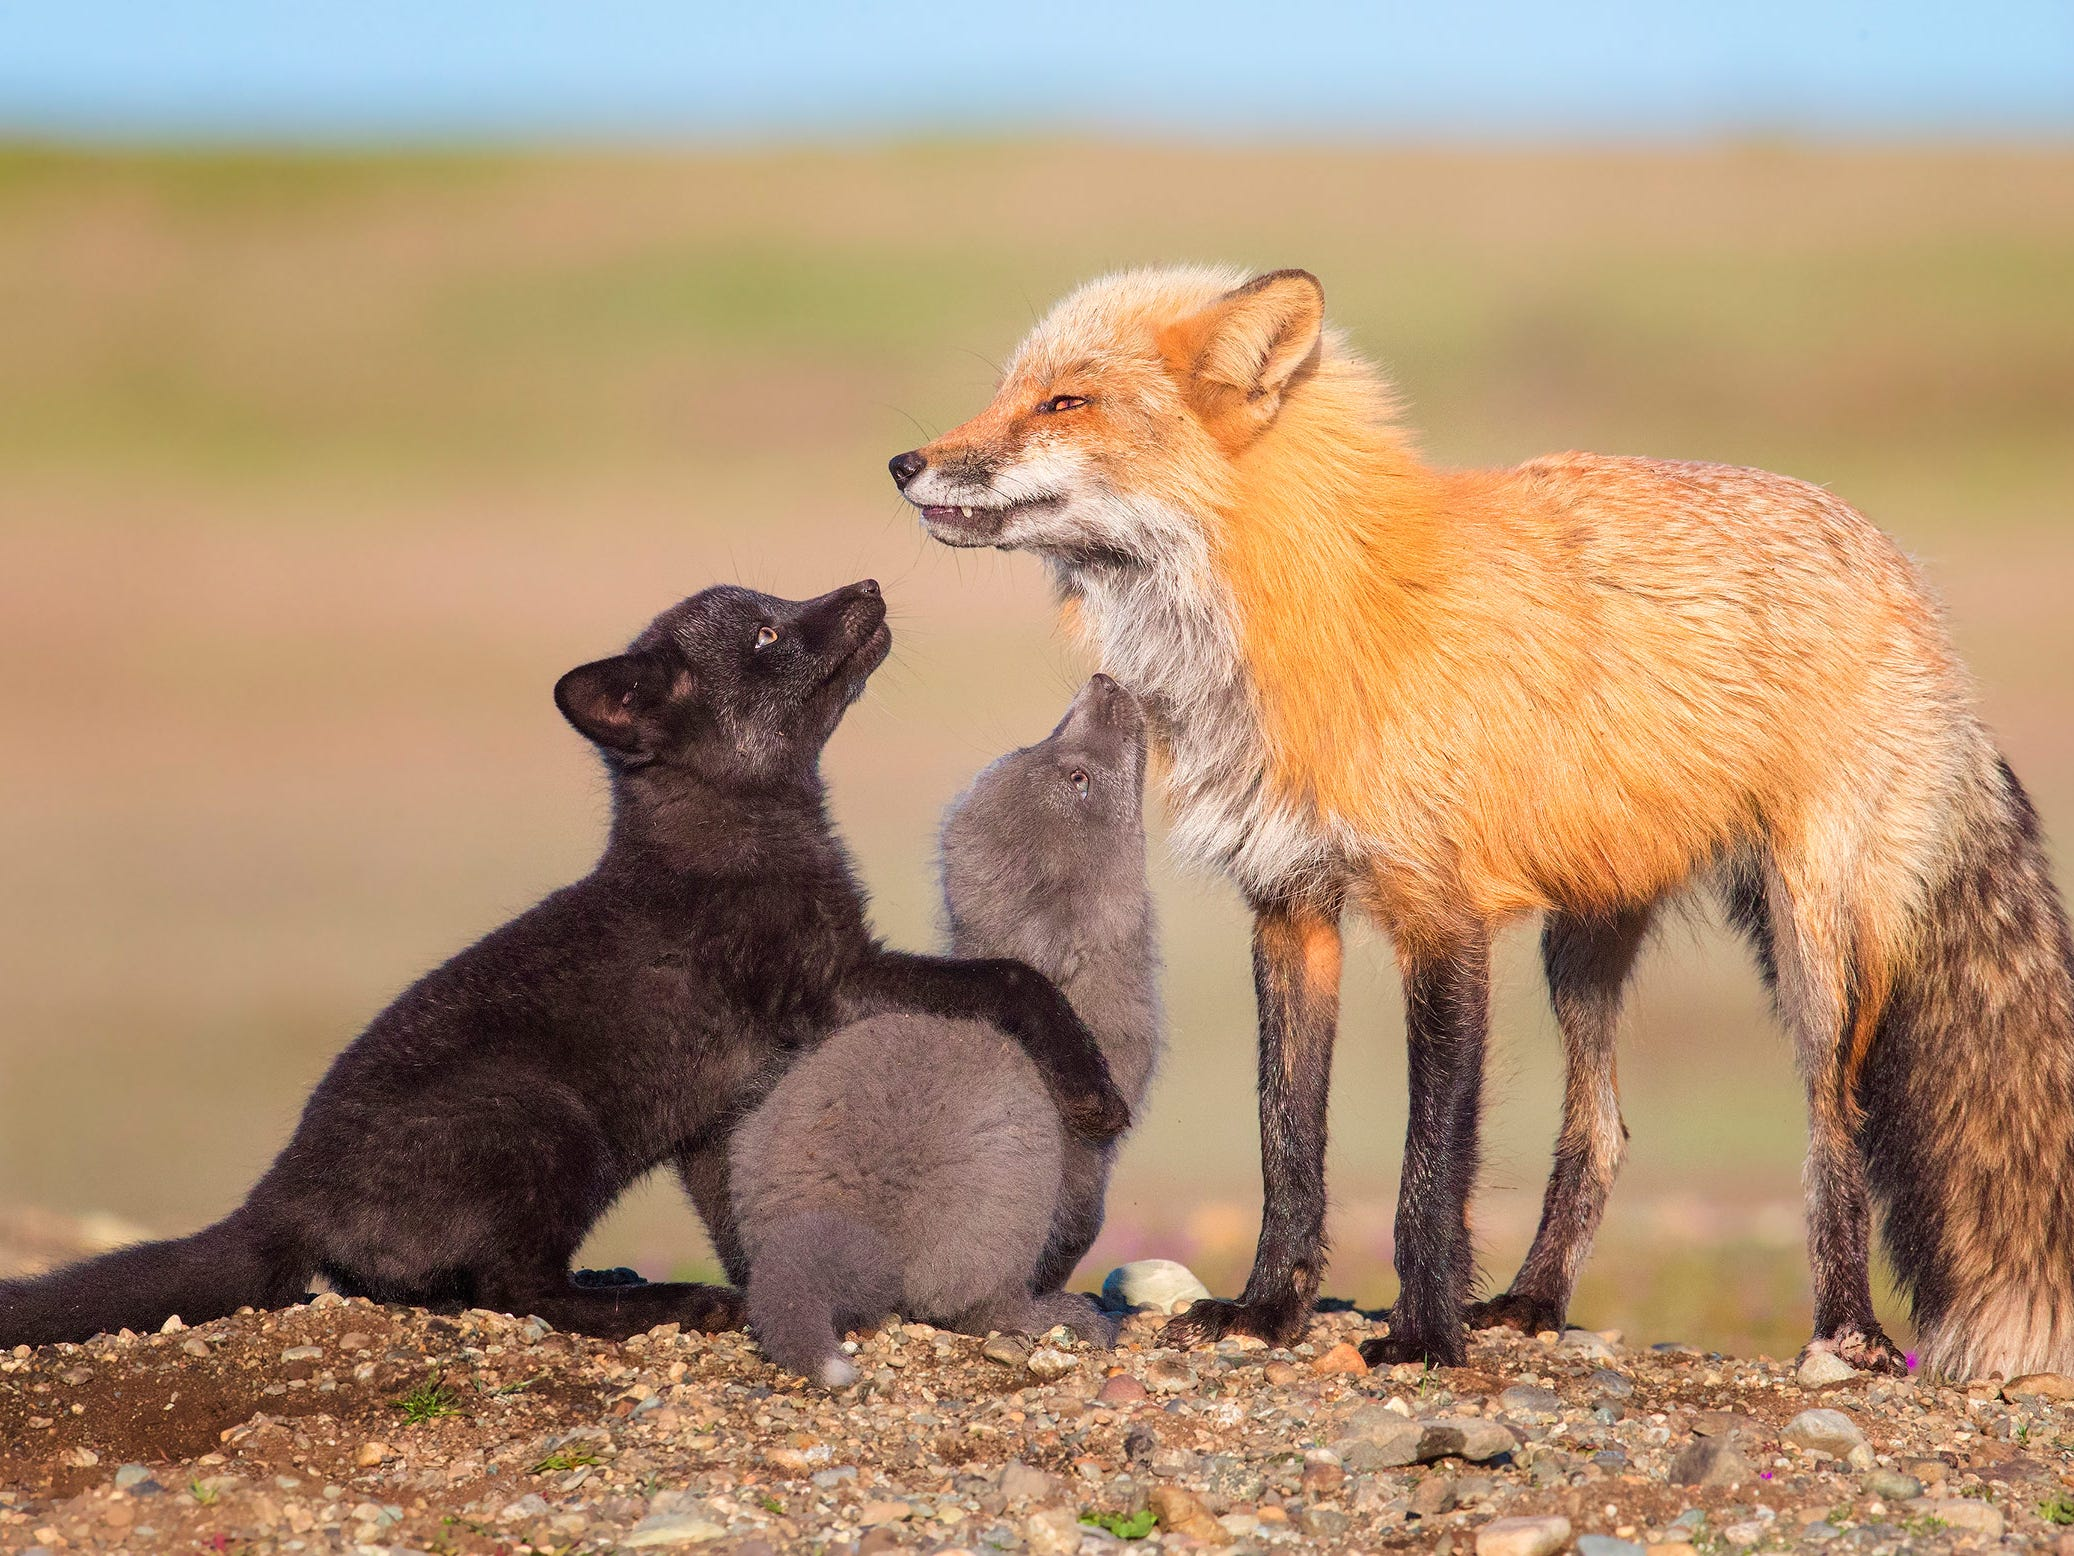 Red, Silver and Black by Tin Man Lee, USA -- Tin was fortunate enough to be told about a fox den in Washington State, North America, which was home to a family of red, black and silver foxes. After days of waiting for good weather he was finally rewarded with this touching moment. -- Canon 1DX Mark II +600mm f4 lens; 1.4x teleconverter; 1/1600 sec at f11; ISO 2000.